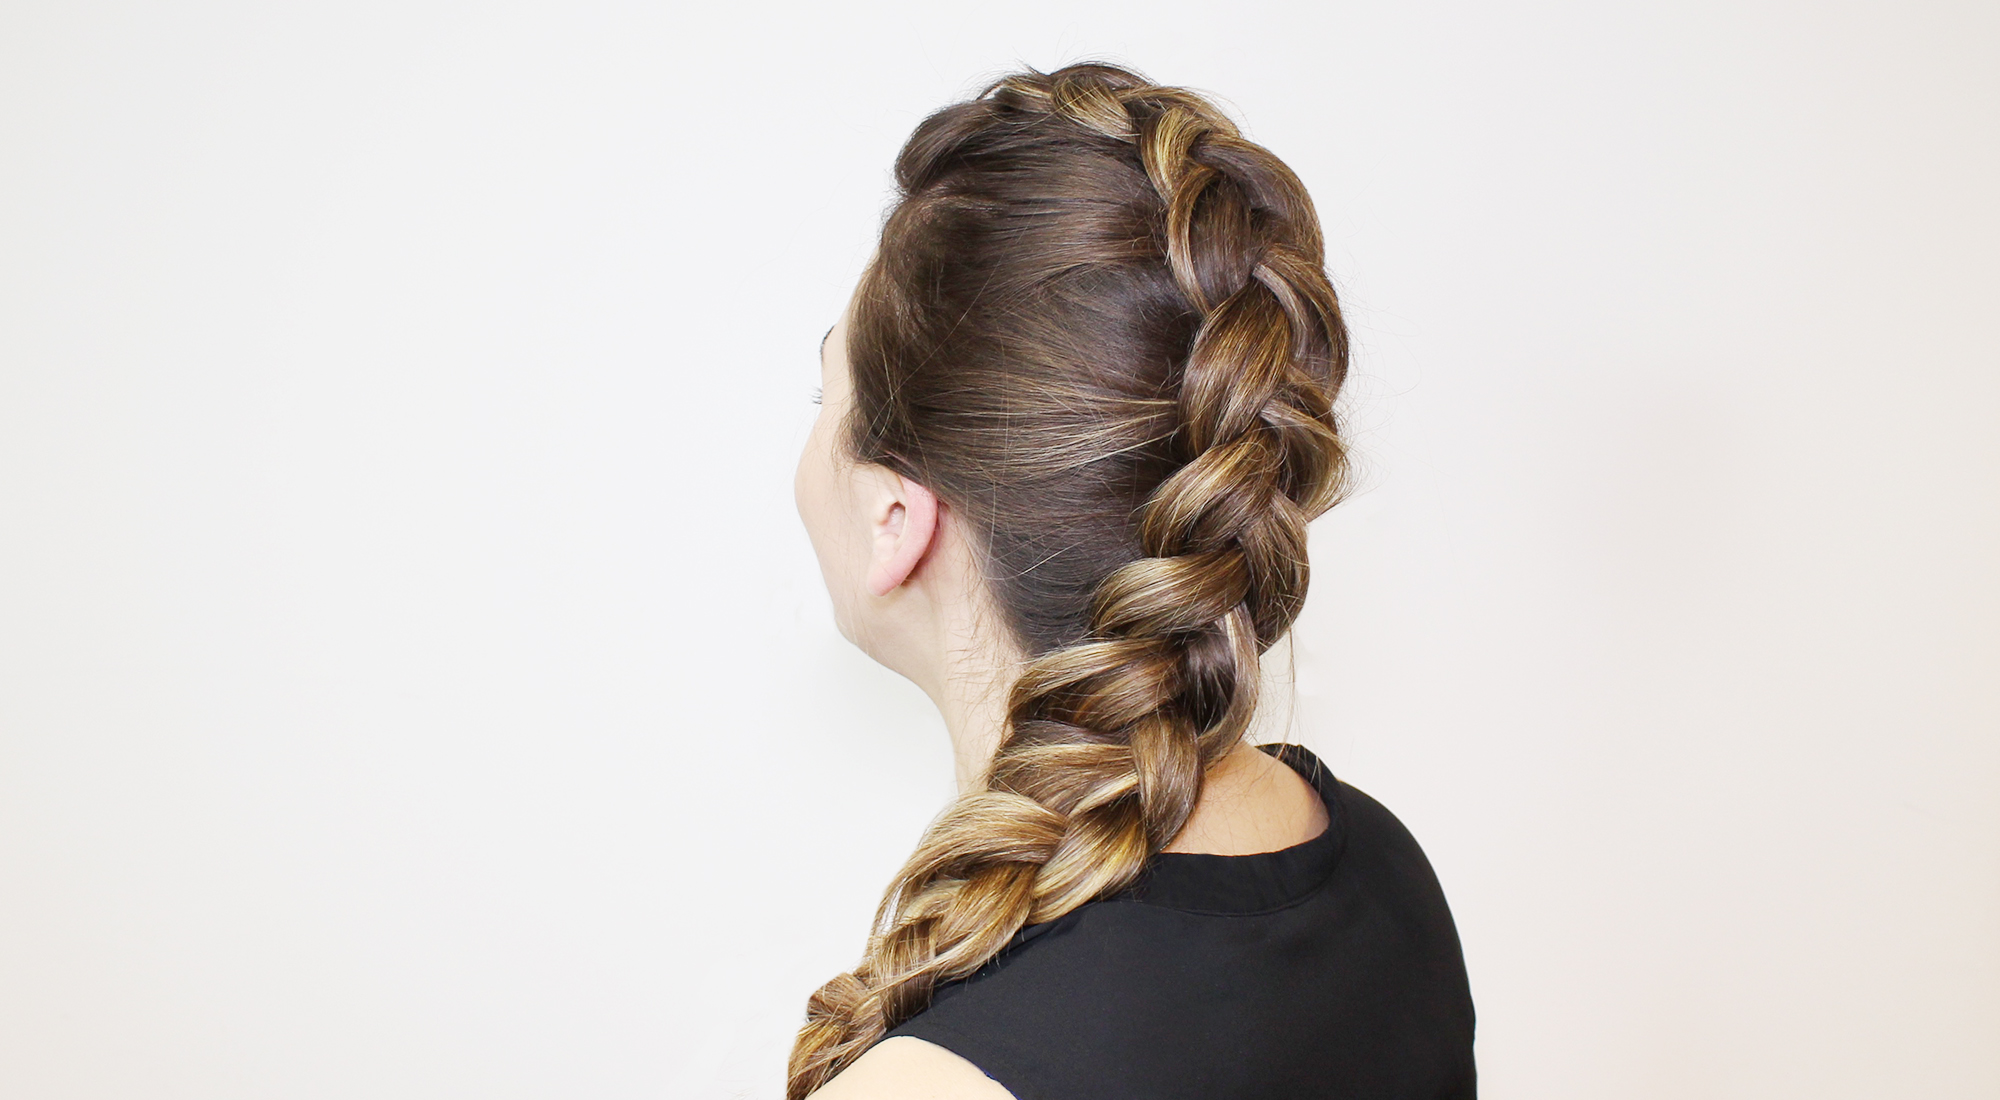 Hair Tutorial 5 Braided Hairstyles For Summer Blow Ltd